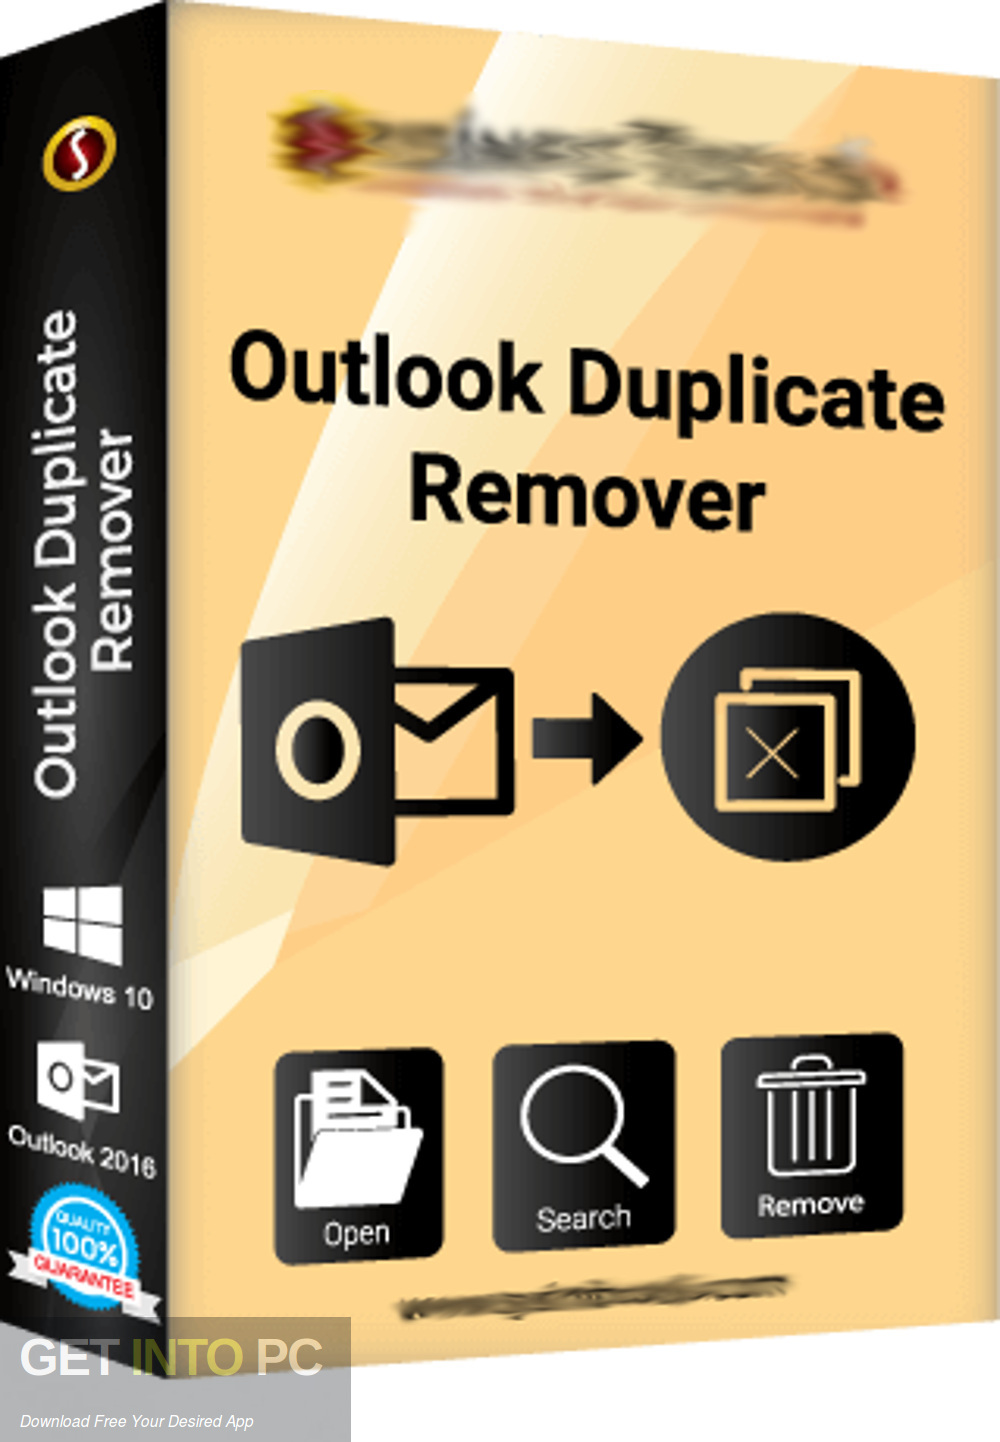 Duplicate Email Remover for Outlook Free Download-GetintoPC.com